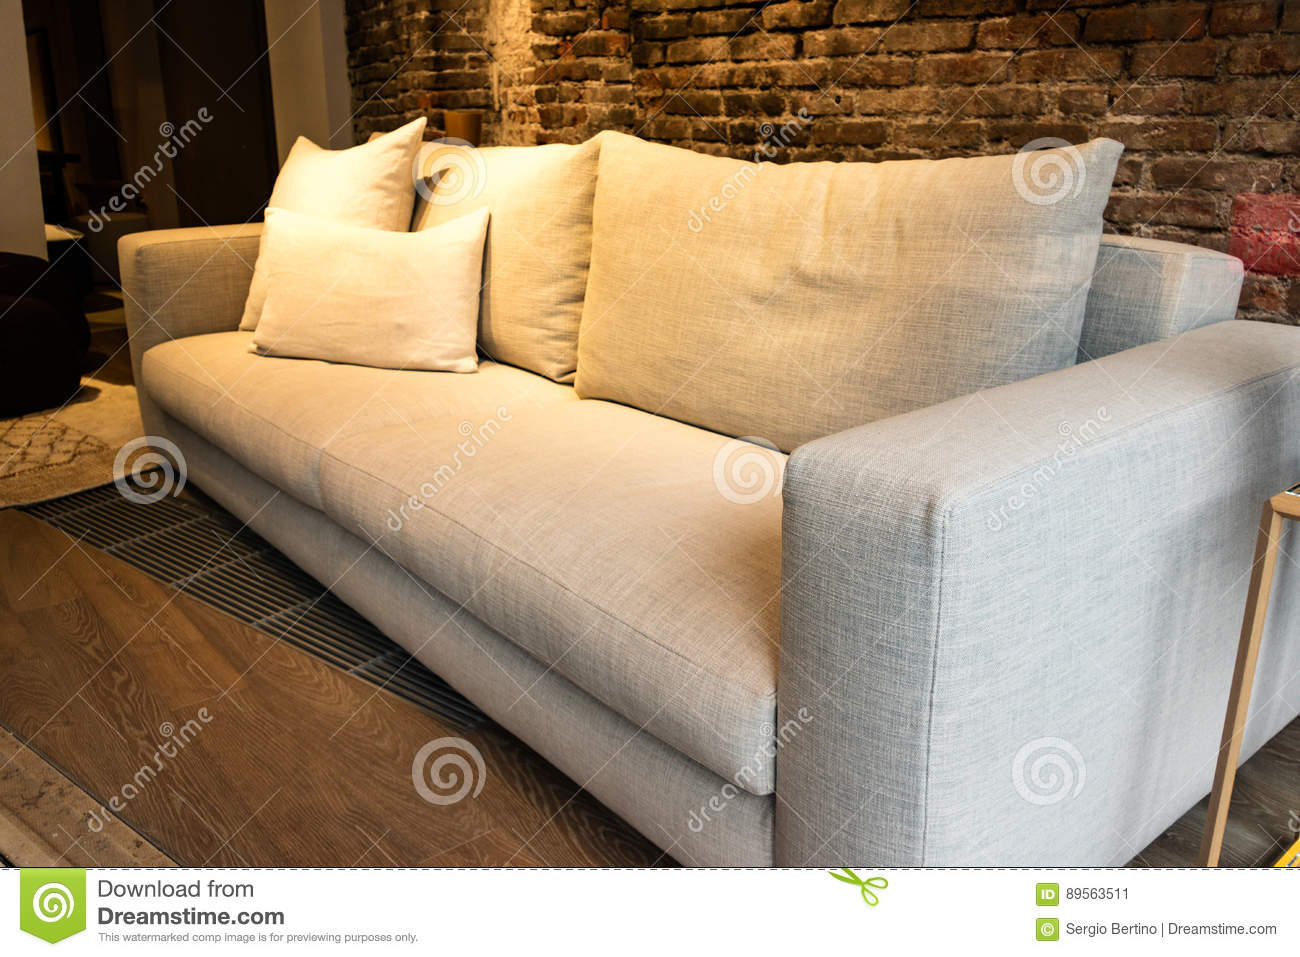 Store Display Of Empty Sofa With Pillows Under Yellow Indoor Lighting In  Room With Brick Wall